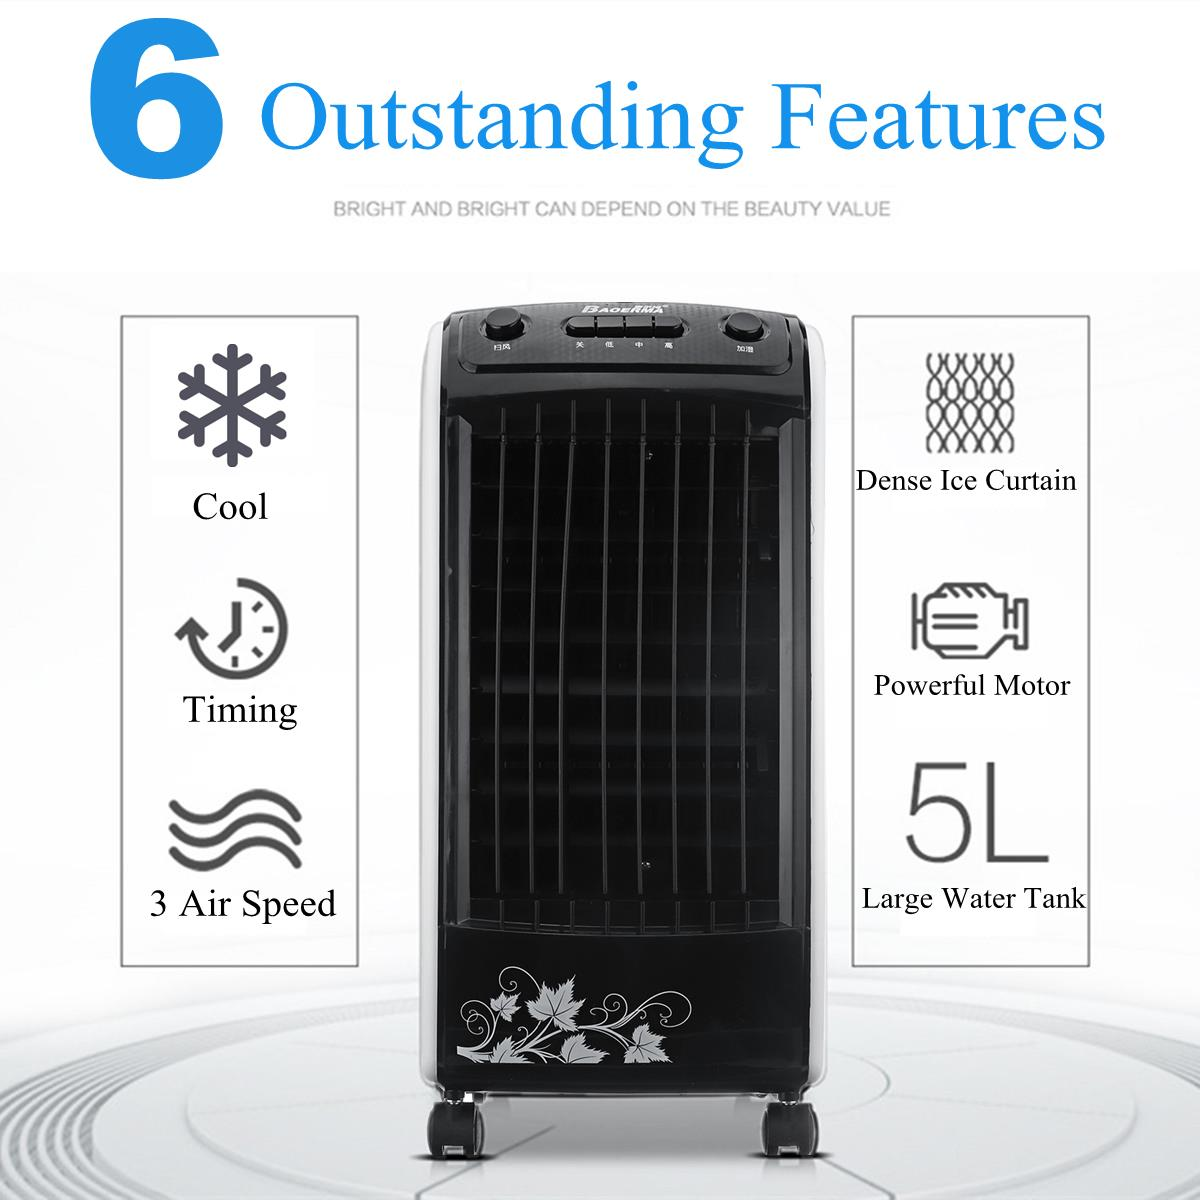 AC 220V 5L Portable Room Black Air Conditioner Indoor Cooler Fan Humidifier Conditioning